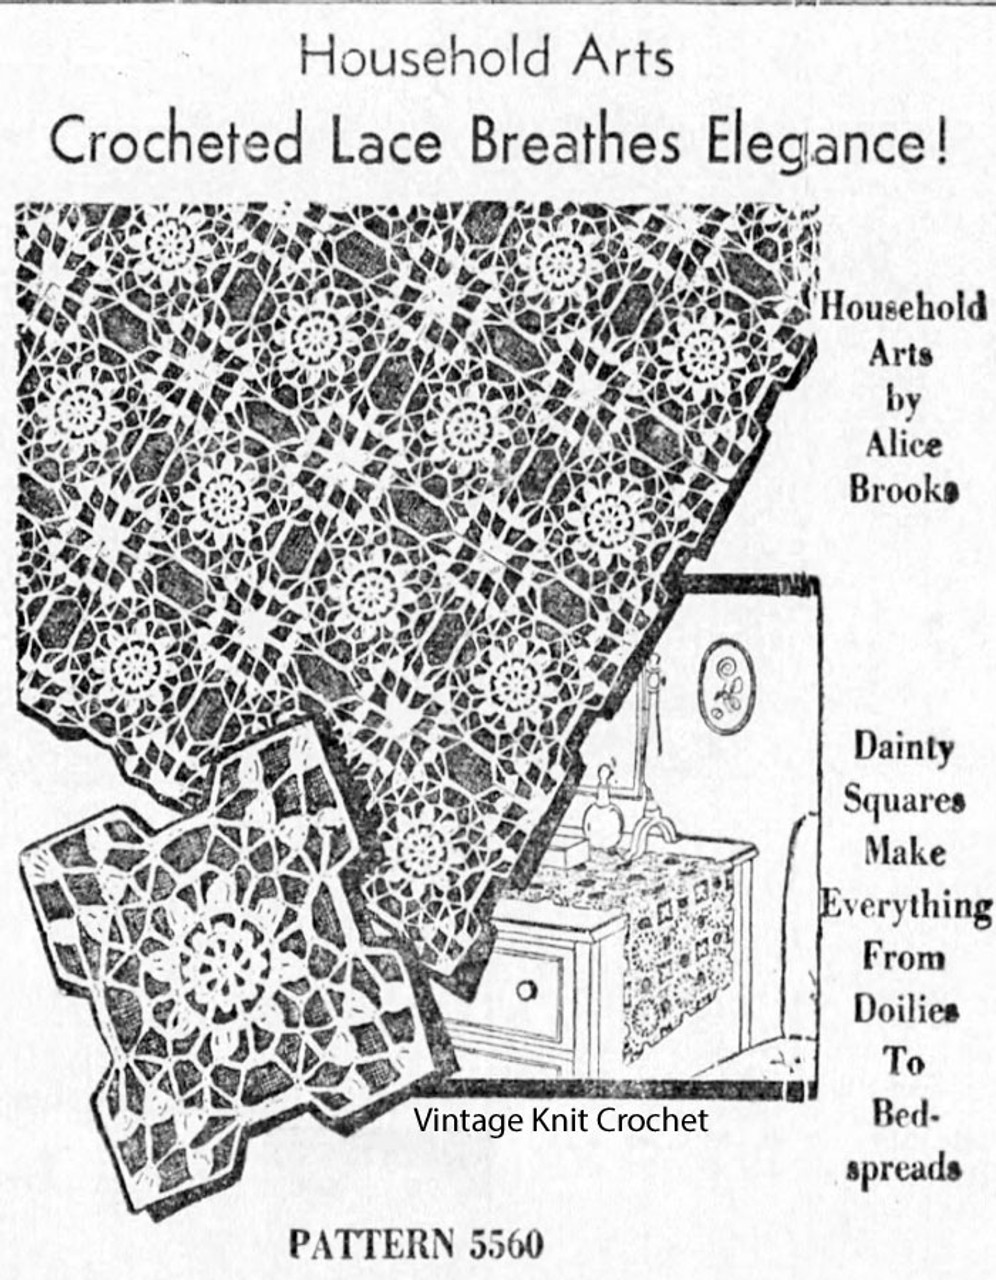 Crocheted Lace Medallion Tablecloth Pattern, Alice Brooks 5560